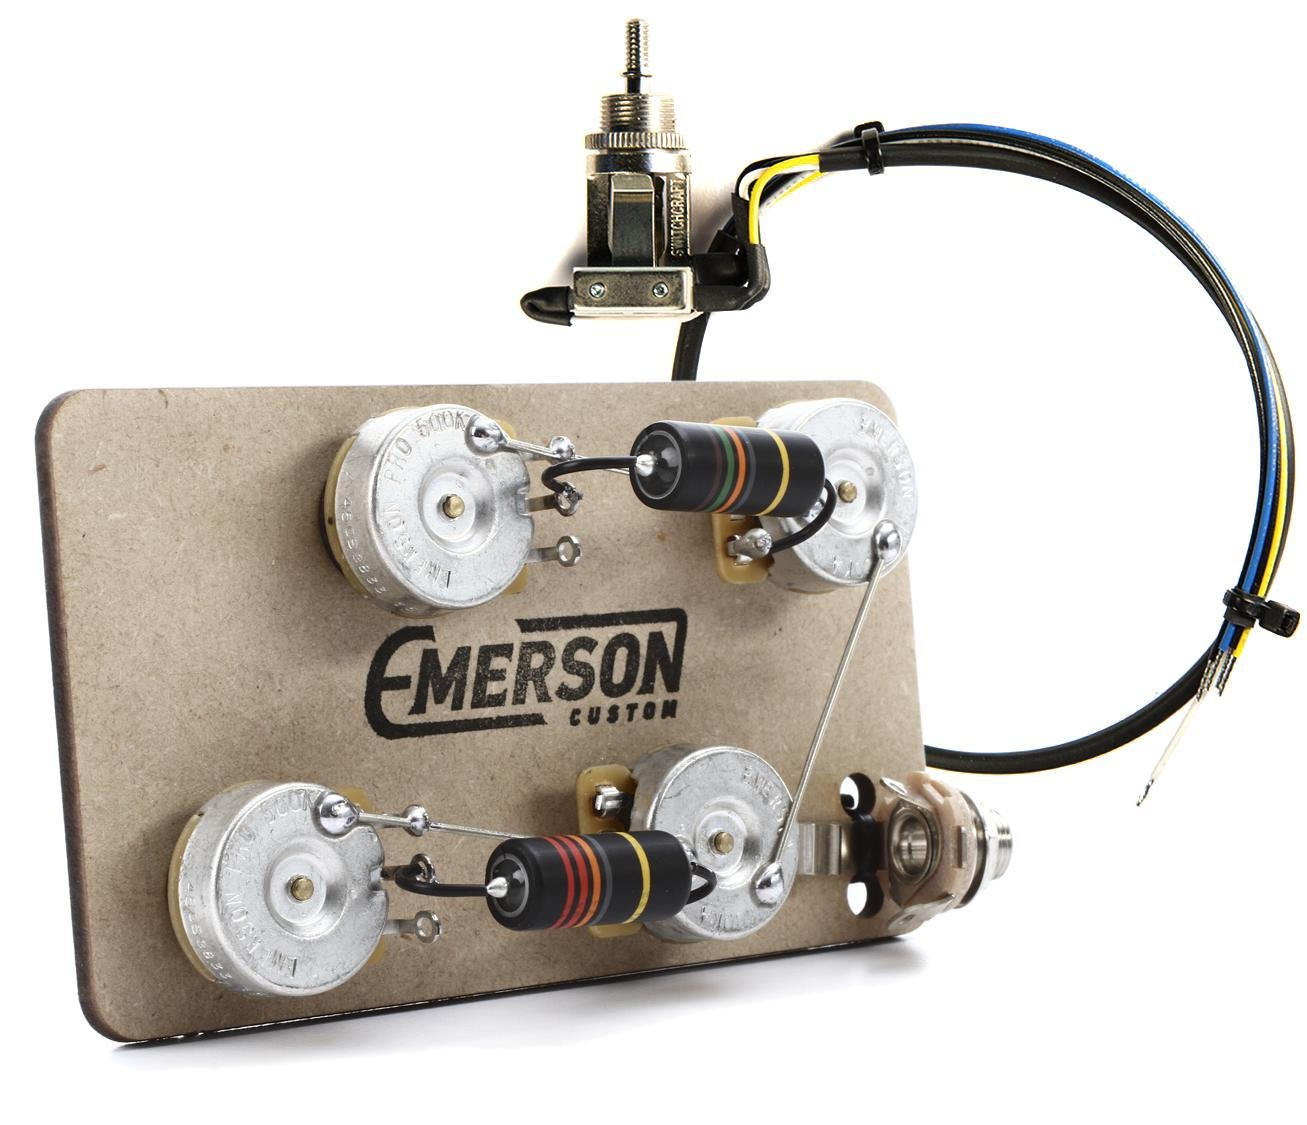 hight resolution of emerson custom prewired kit for les paul guitars long shaft with 3 way switch